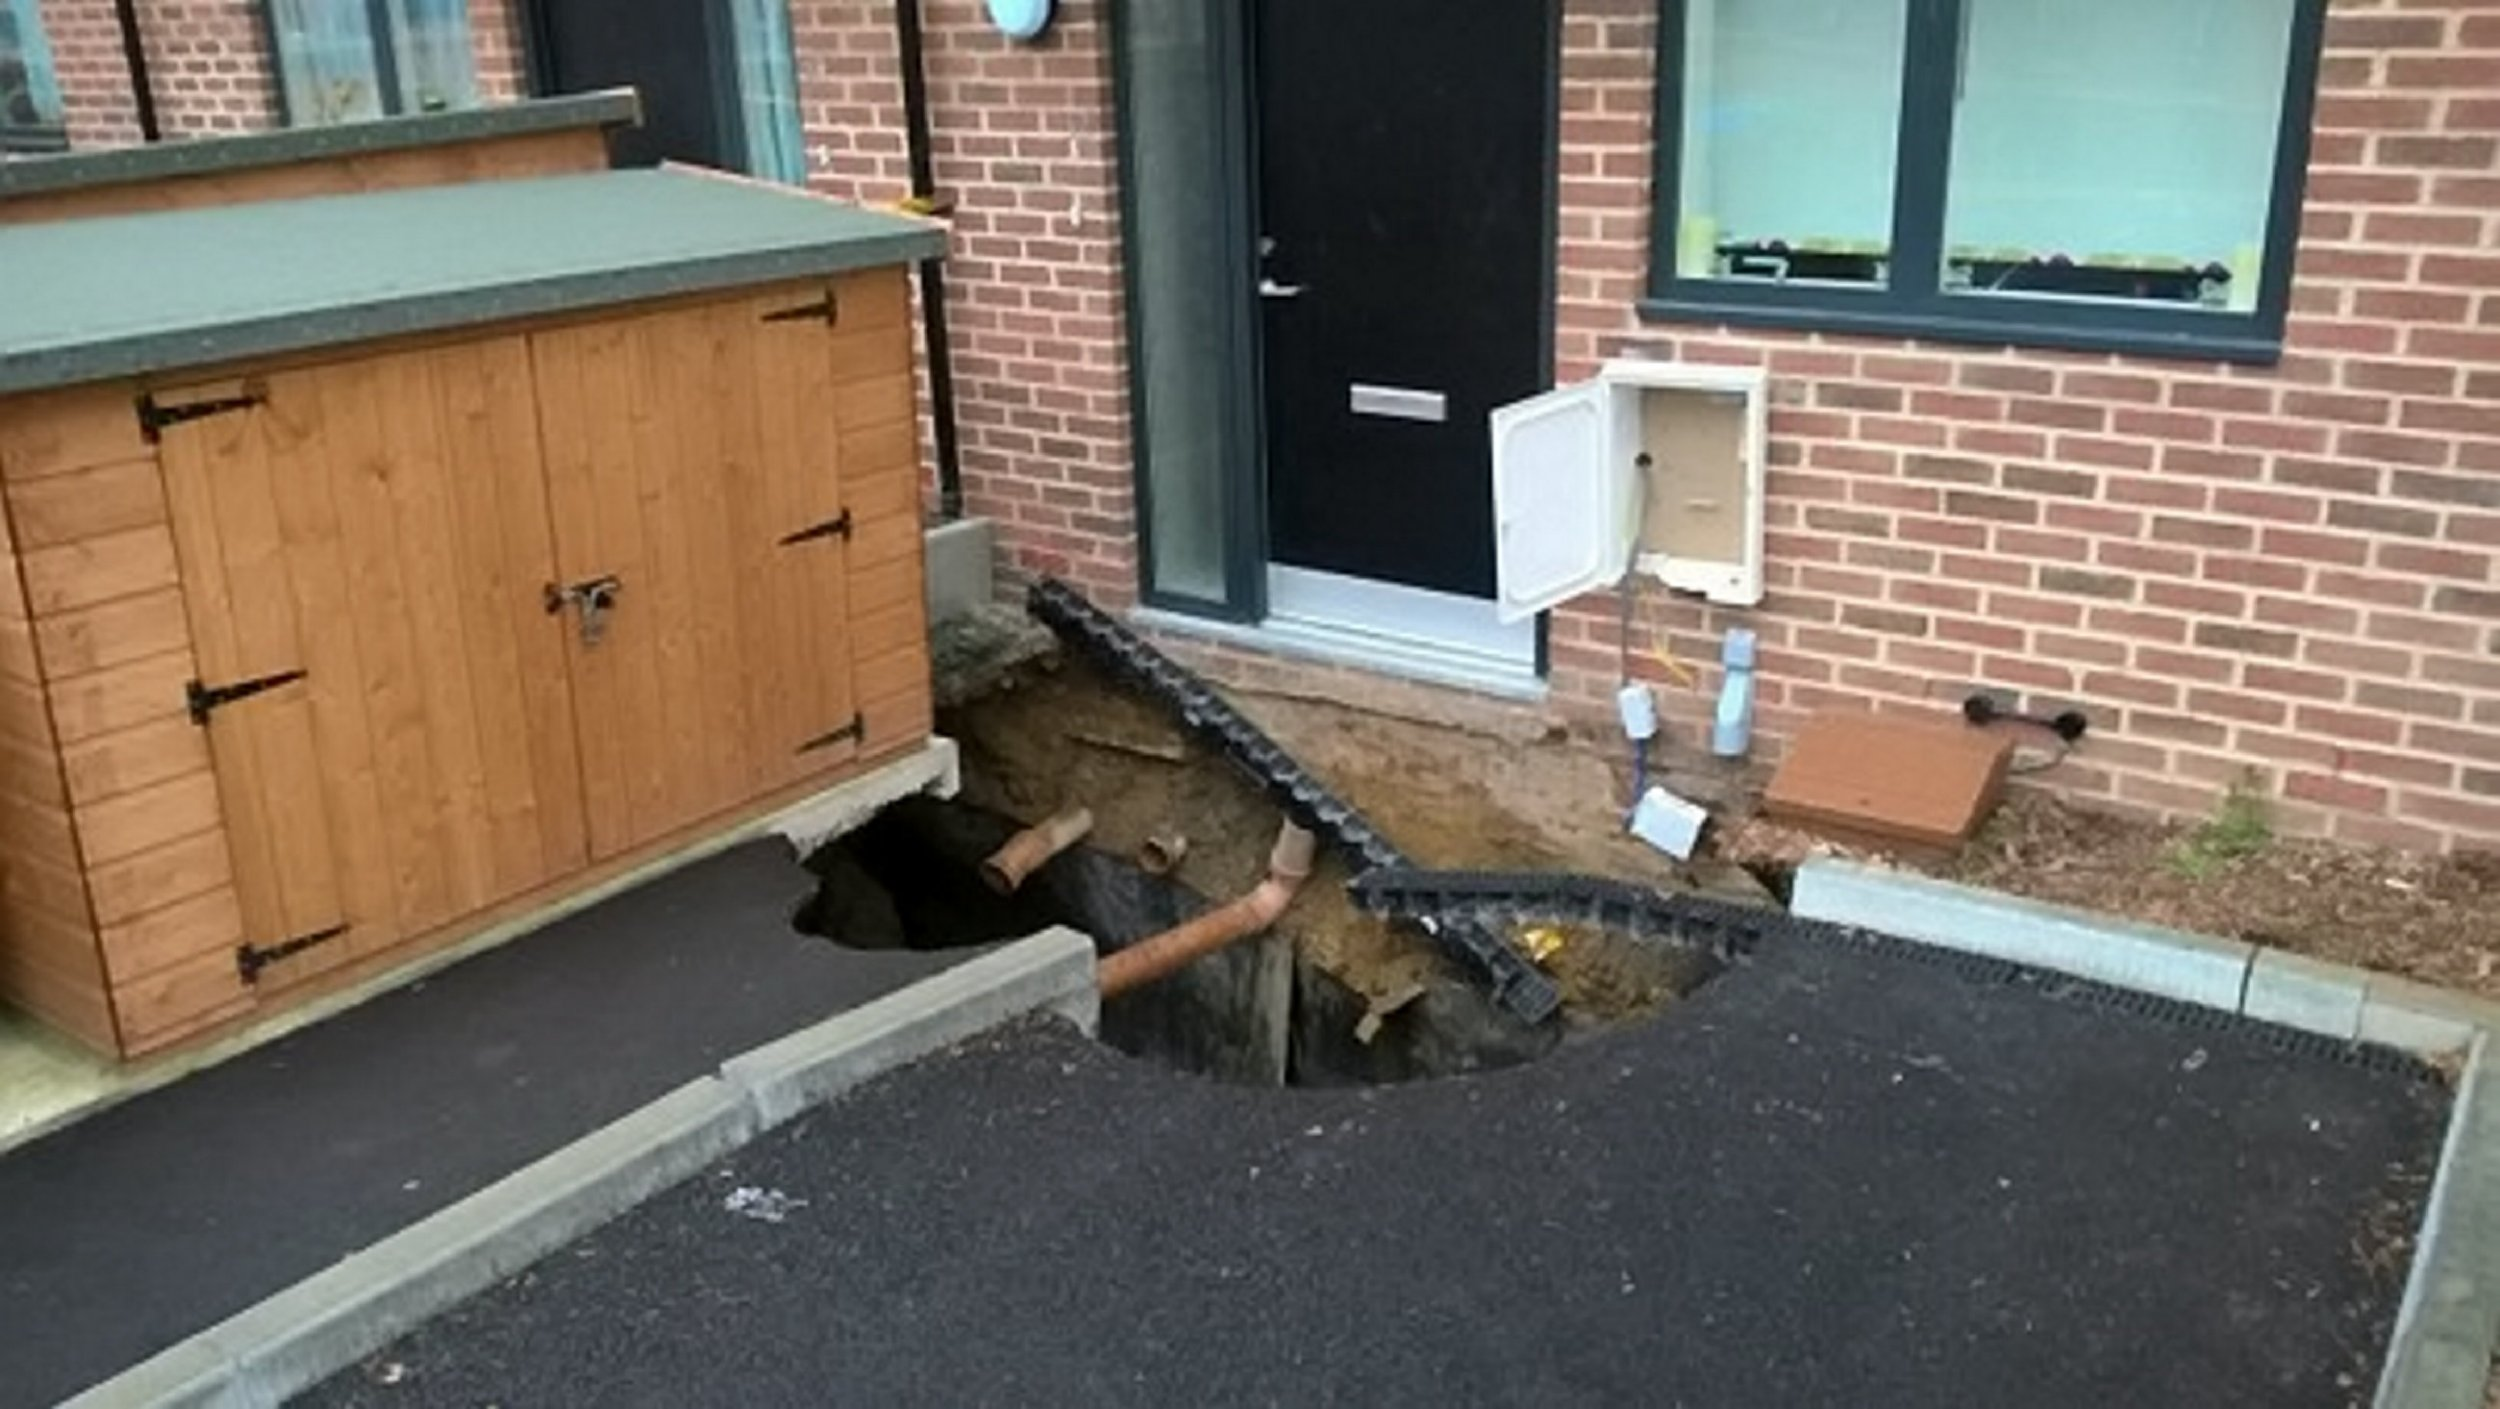 The sinkhole in Plumstead, south east London. See SWNS story SWSINK; Residents of a brand new housing development were evacuated this weekend - after a SINKHOLE emerged. The deep hole emerged outside a block of properties that were recently erected and lead to 48 people being forced out of their homes on bank holiday Monday. London Fire Brigade cordoned off the area around Brickfield Cottages, in Plumstead, south east London as a 'hazard zone'. The cause of the enormous hole, which measures 5 metres by 5 metres, is currently unknown.